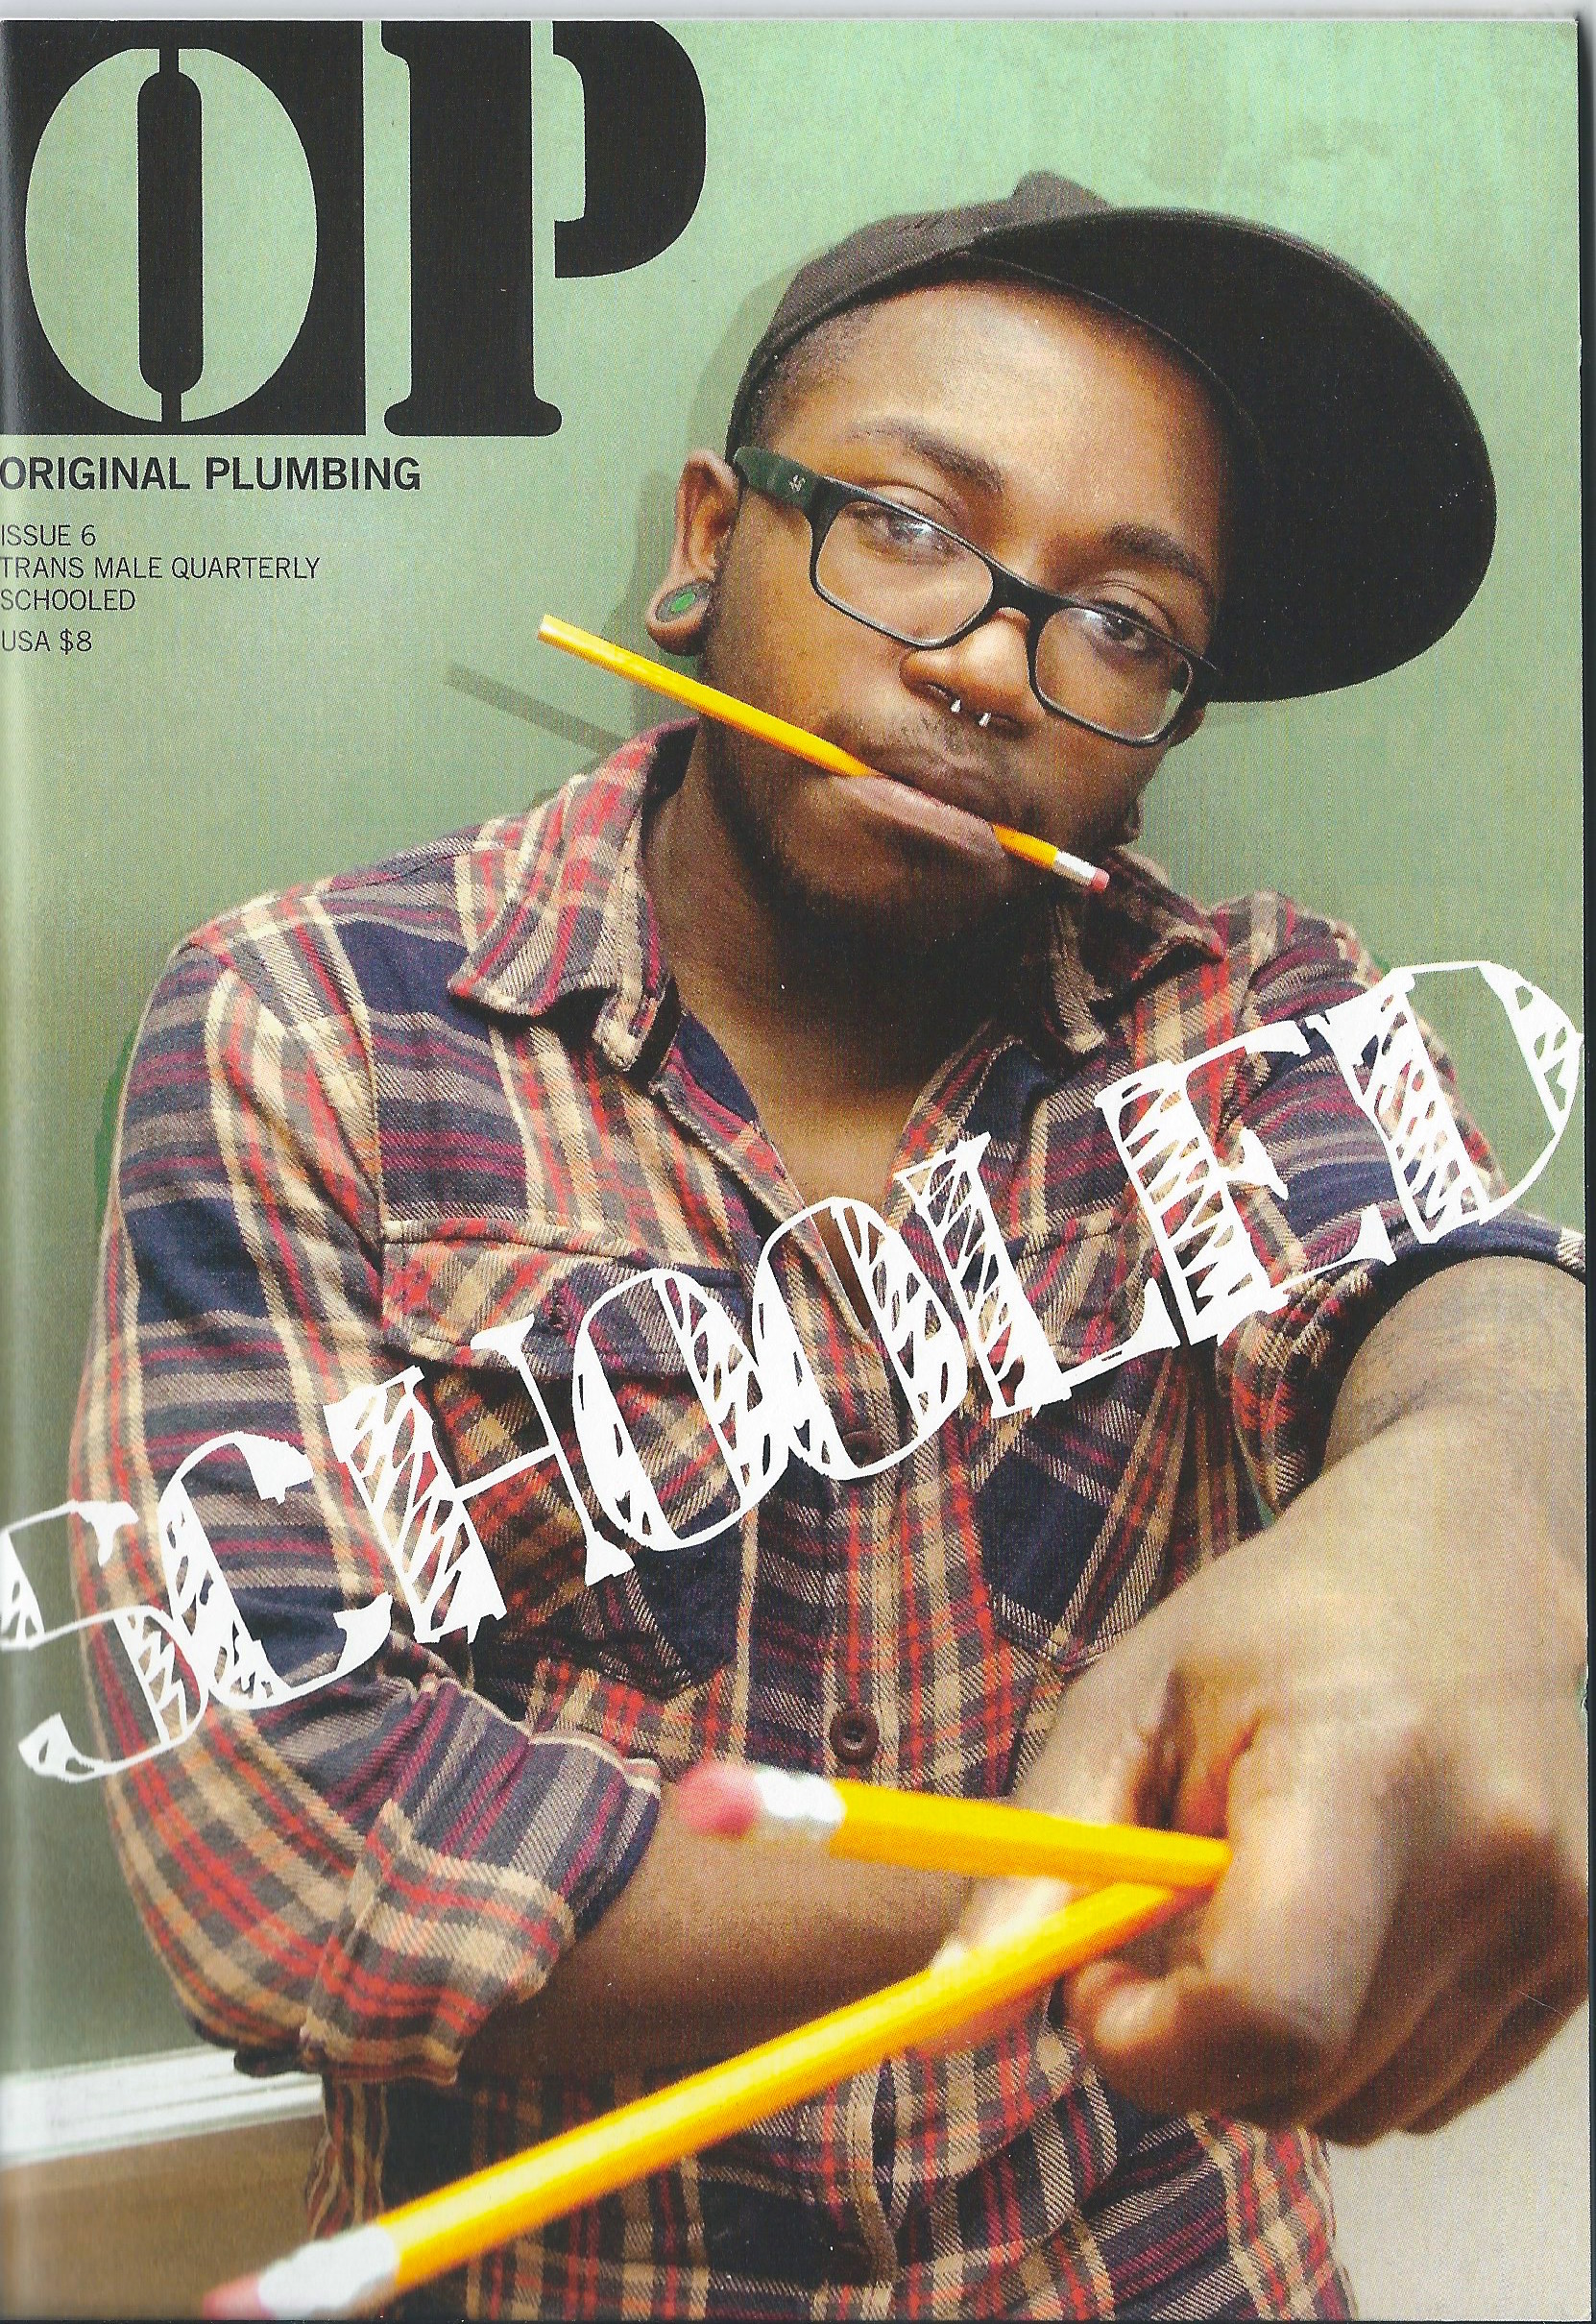 OP #6, Photographed by Amos Mac